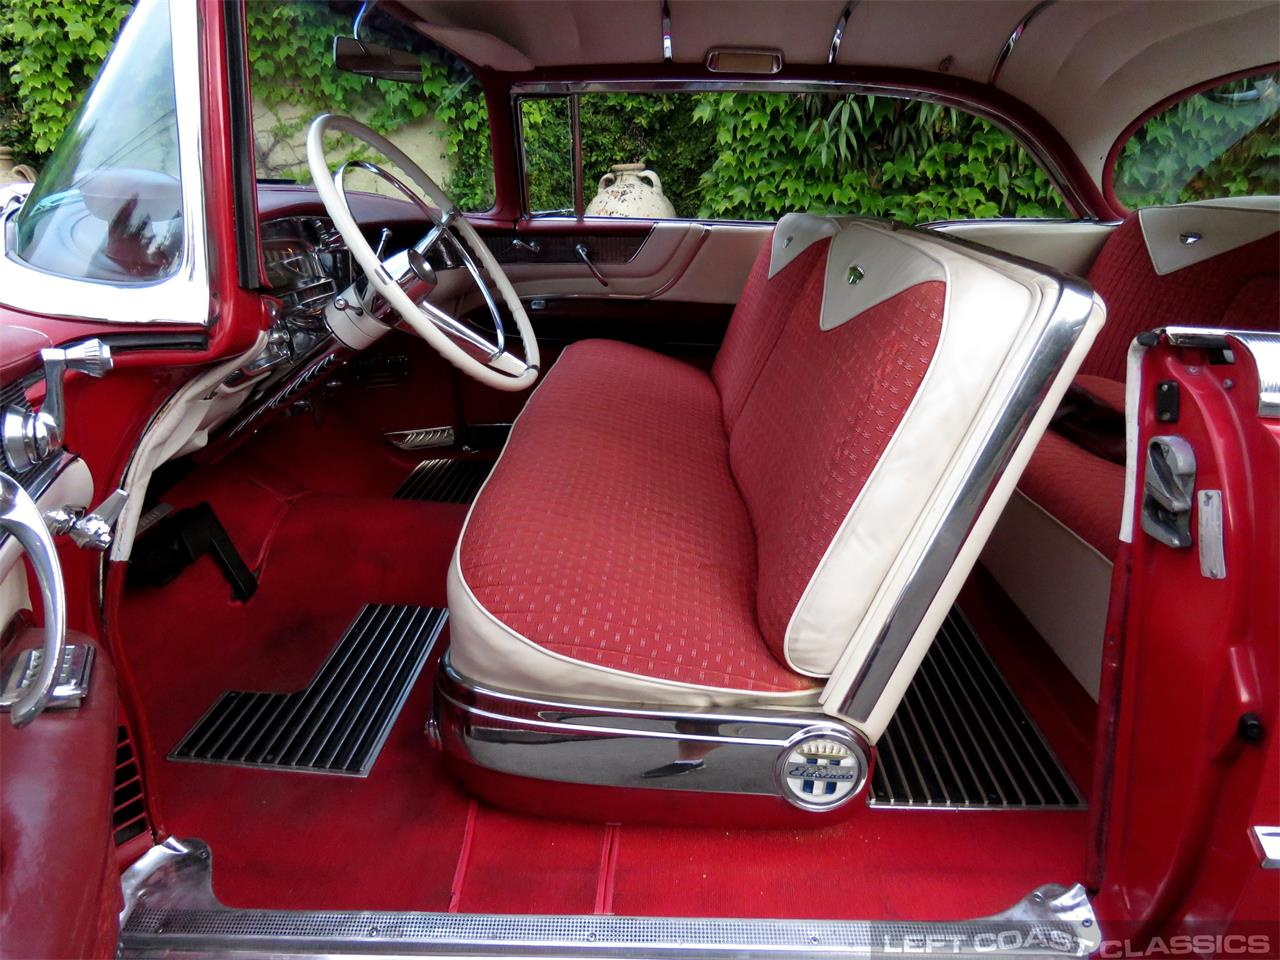 Large Picture of 1956 Cadillac Eldorado Seville - $39,500.00 Offered by Left Coast Classics - QD3M